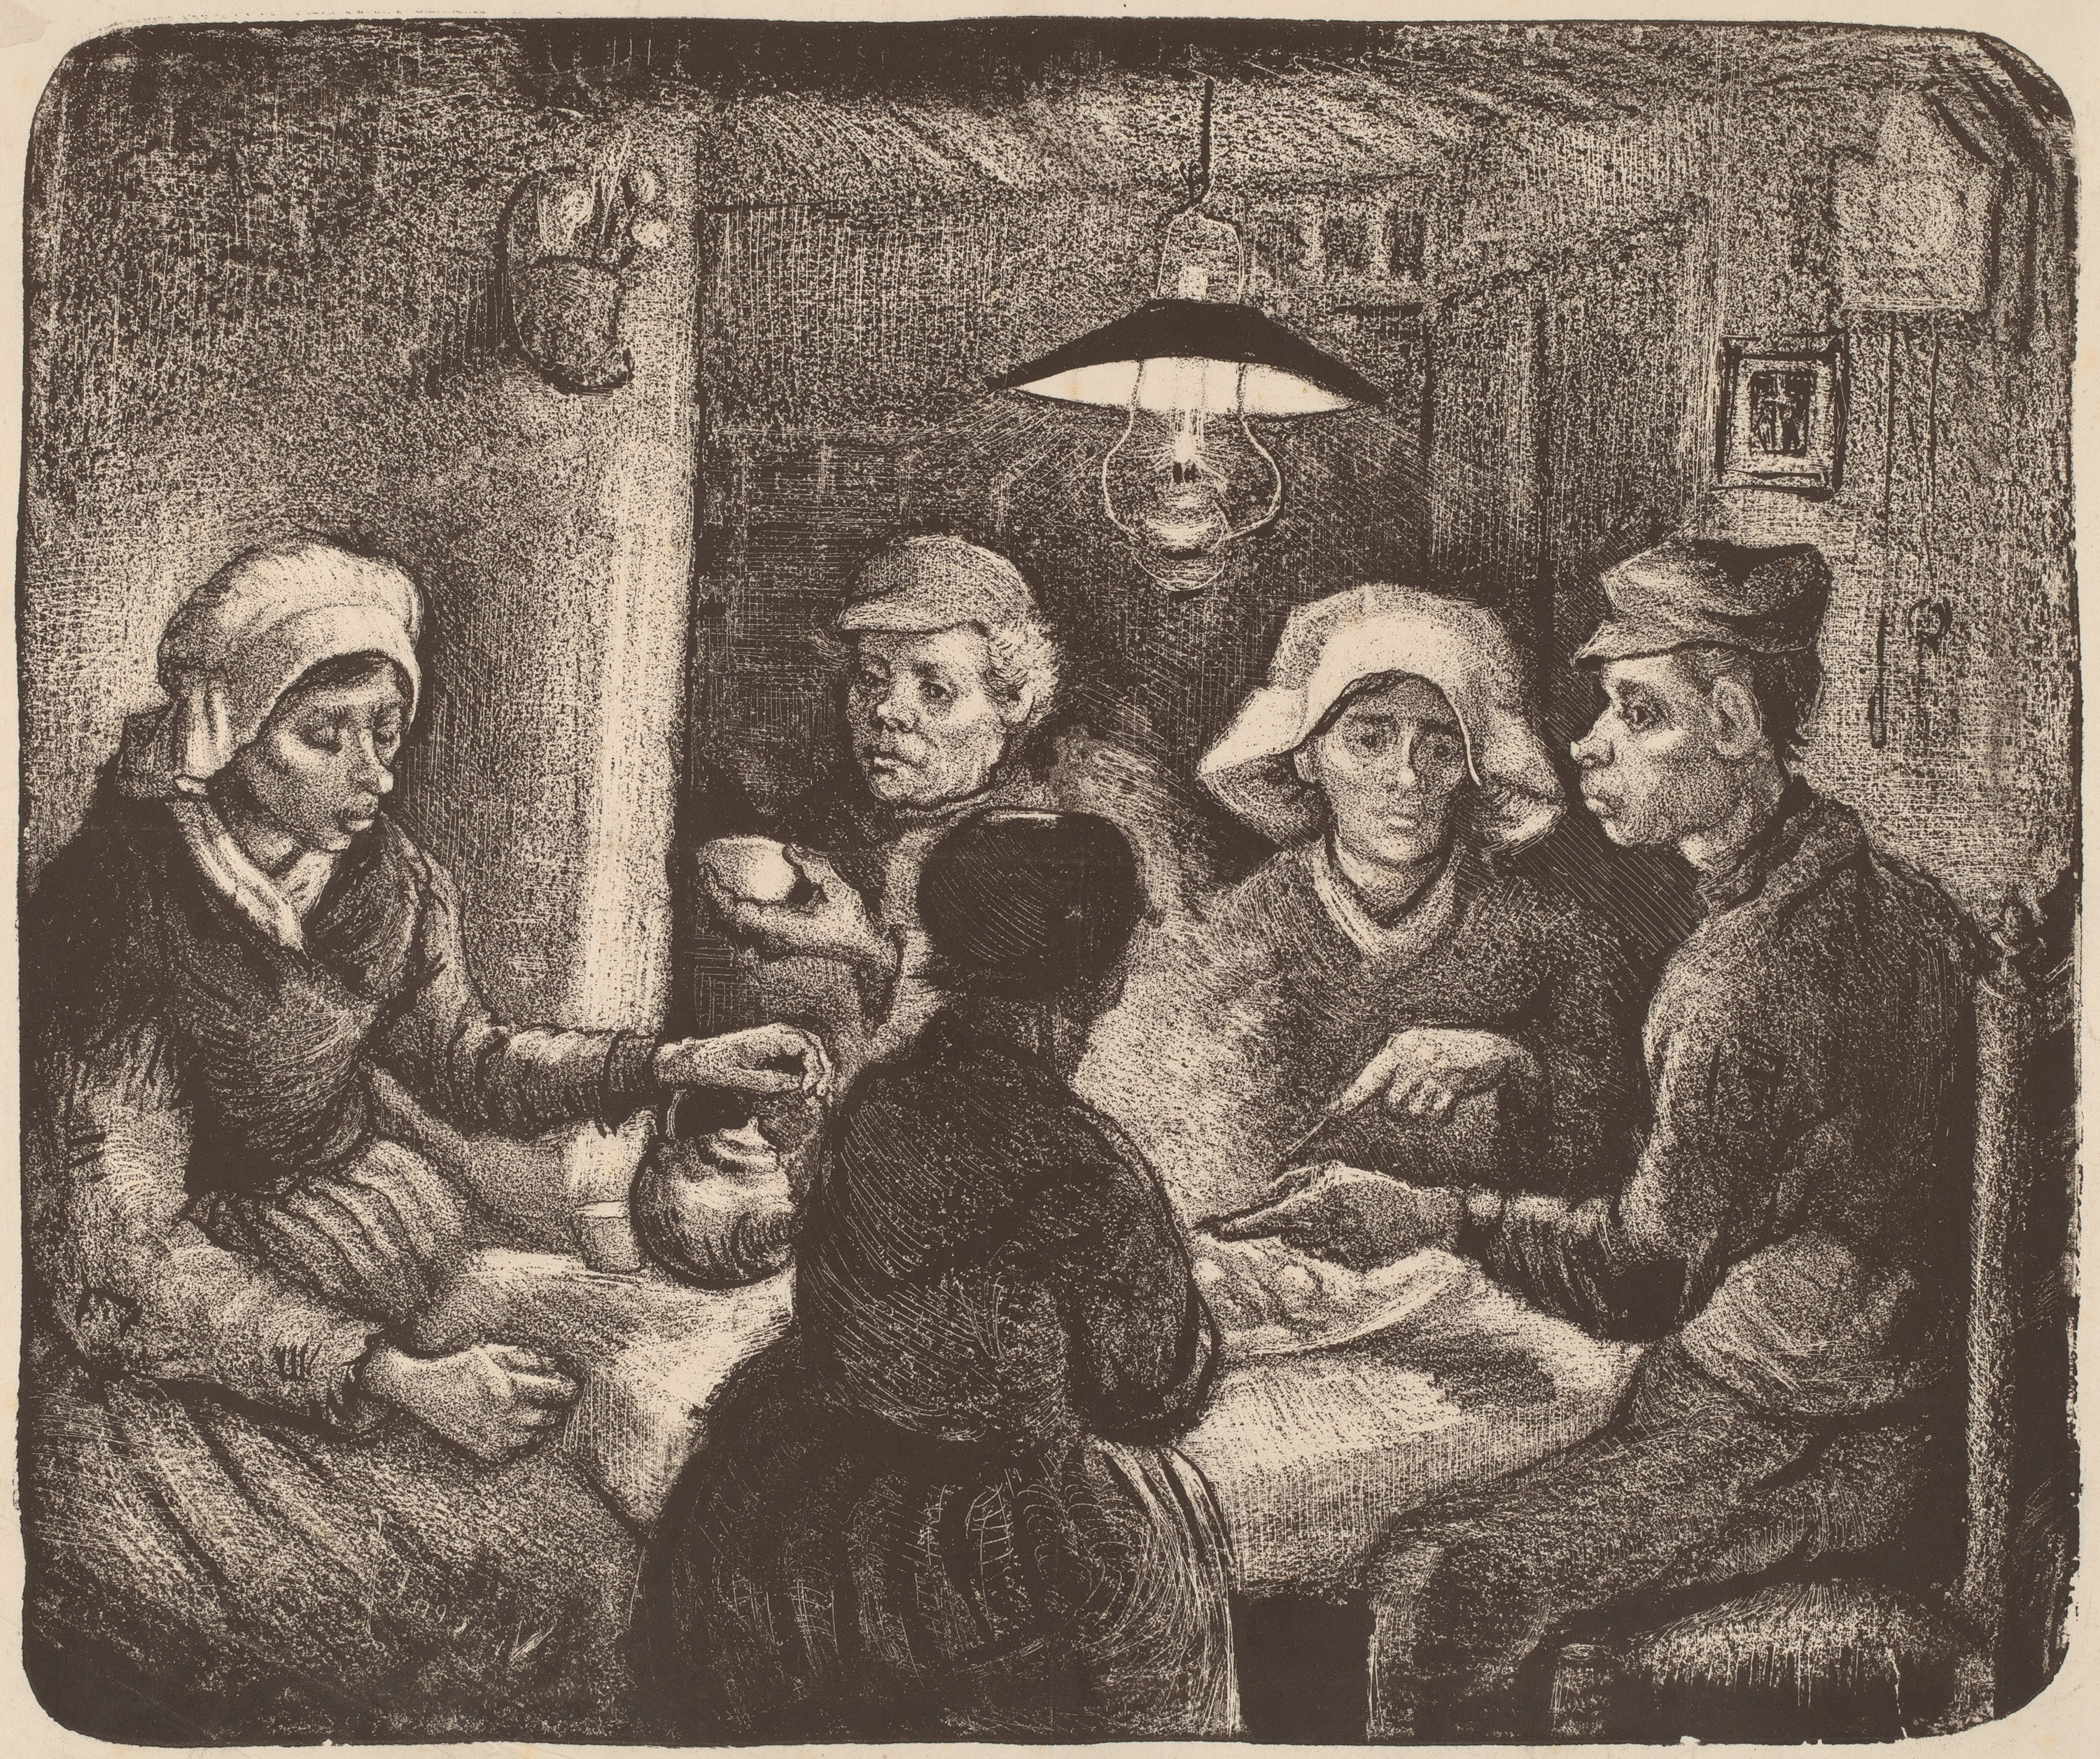 Study for The Potato Eaters Lithograph